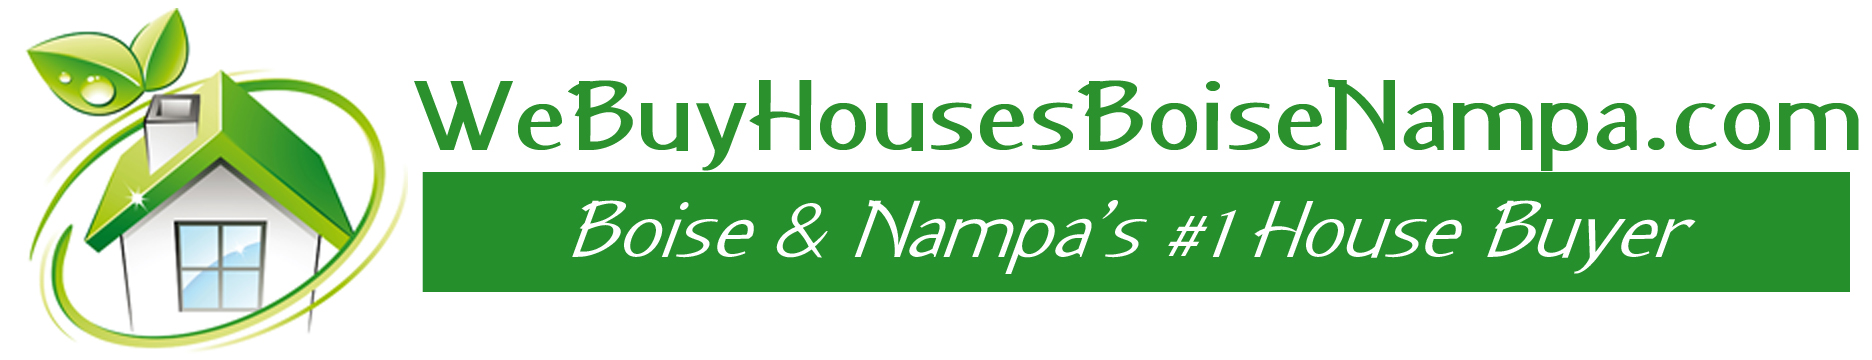 We Buy Houses in Boise-Nampa